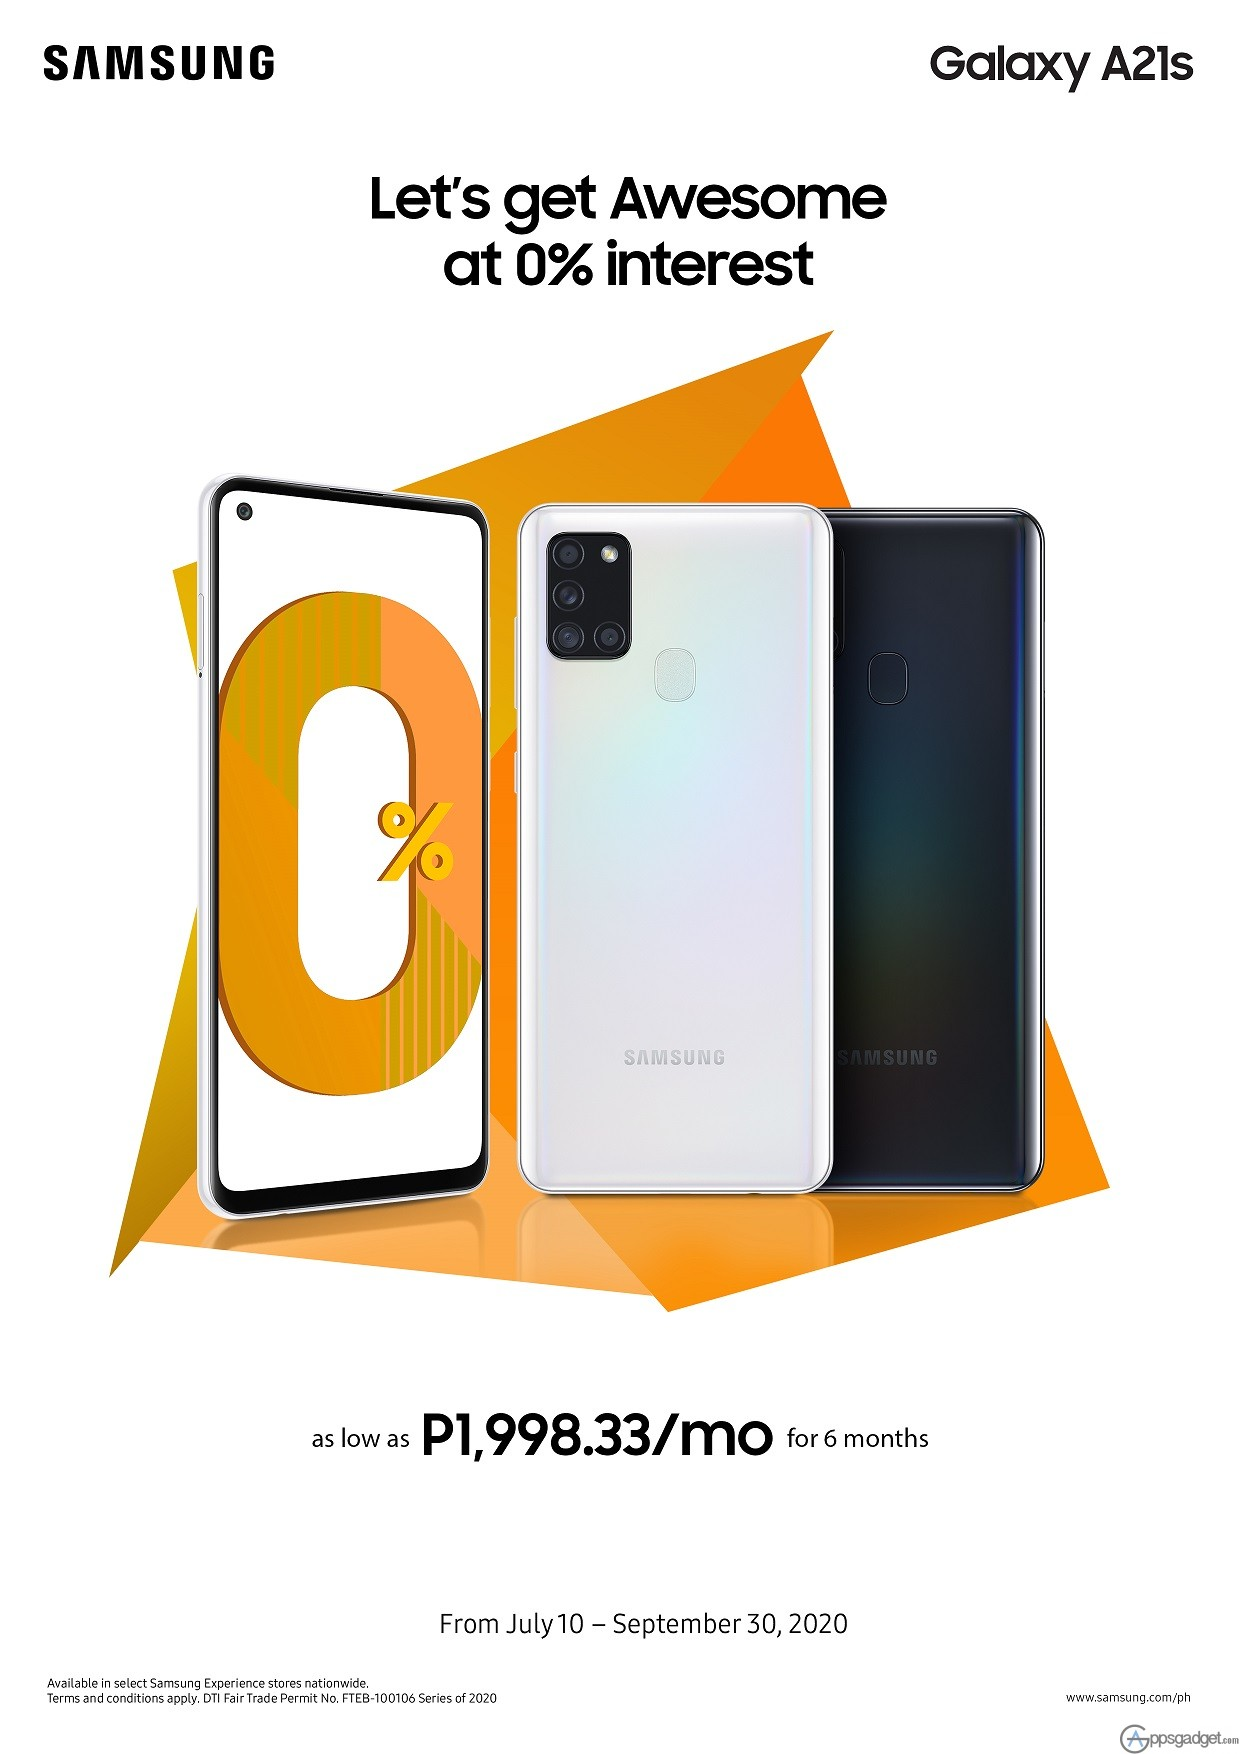 """SAMSUNG Galaxy A21s and A11 A-series Great for Gen Z to bring out their """"awesome"""""""